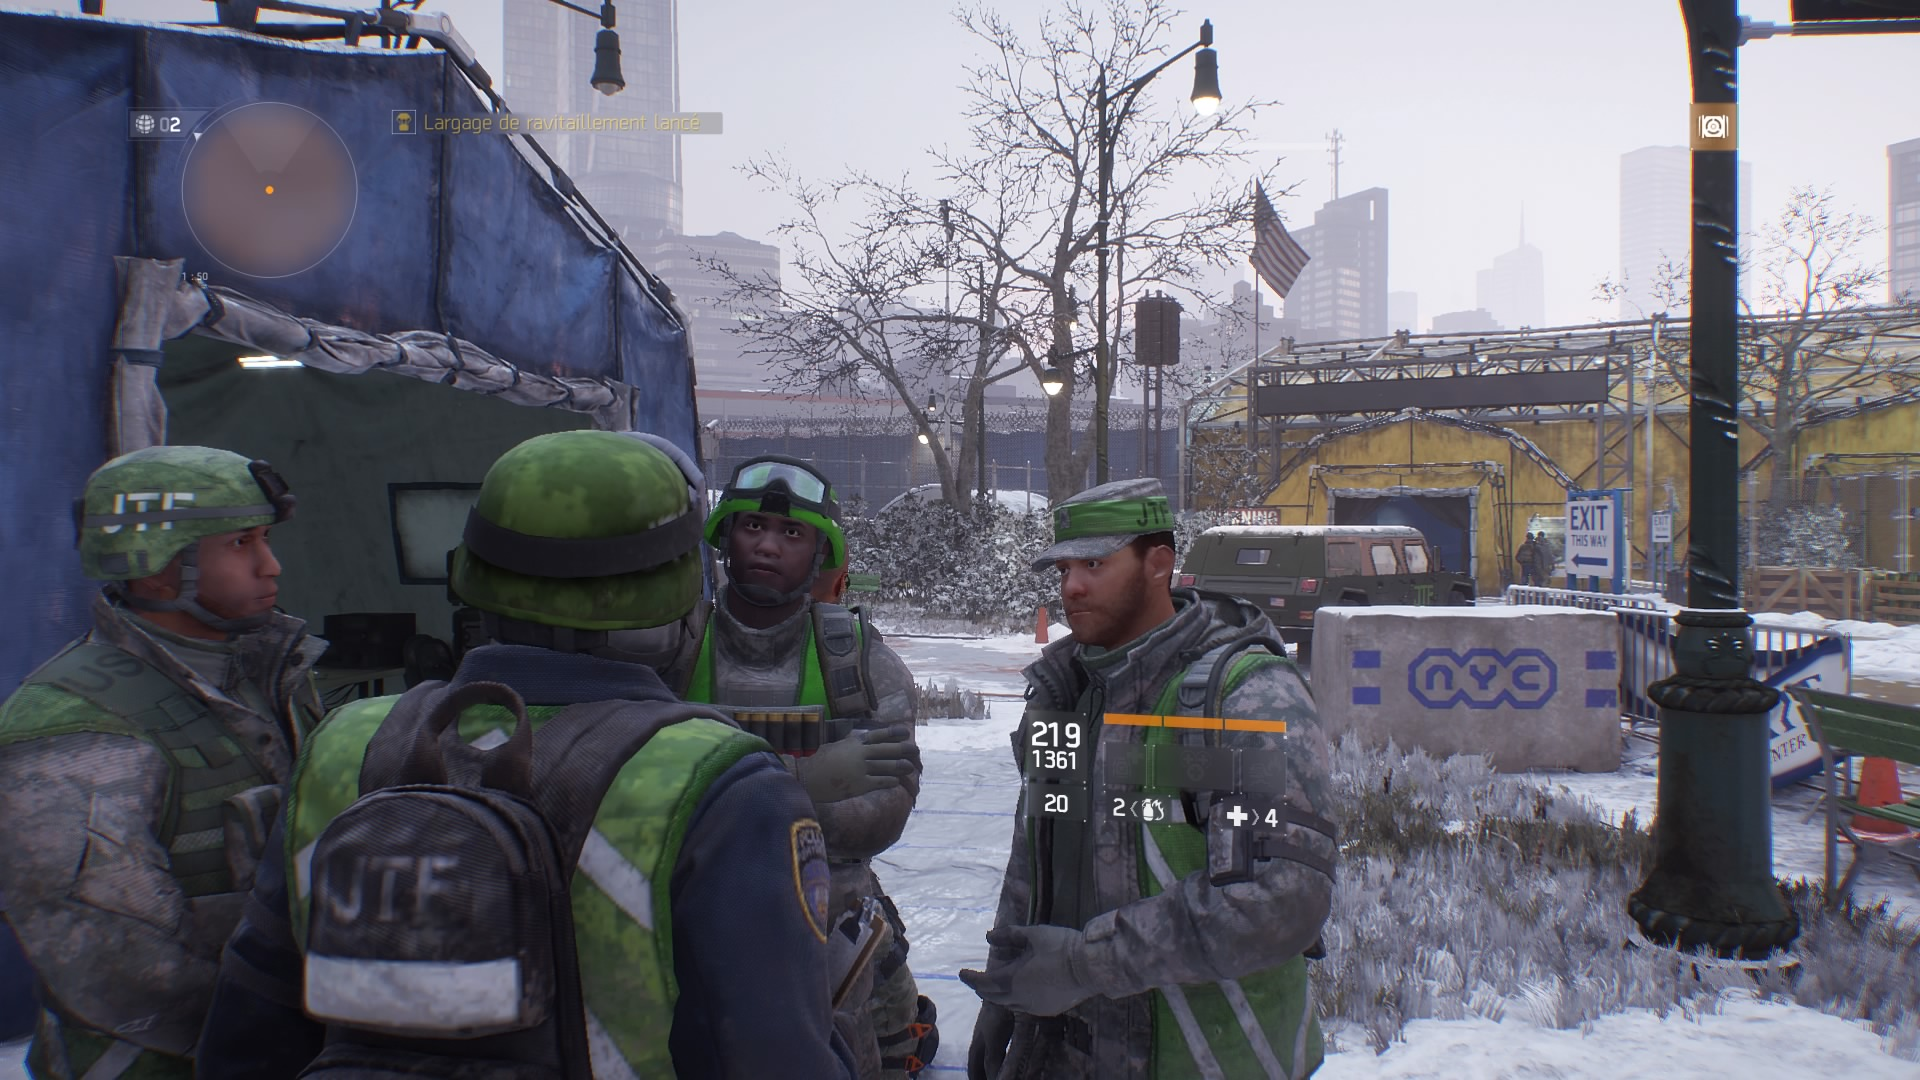 0_1560708786251_Tom Clancy's The Division™_20190608224016.jpg